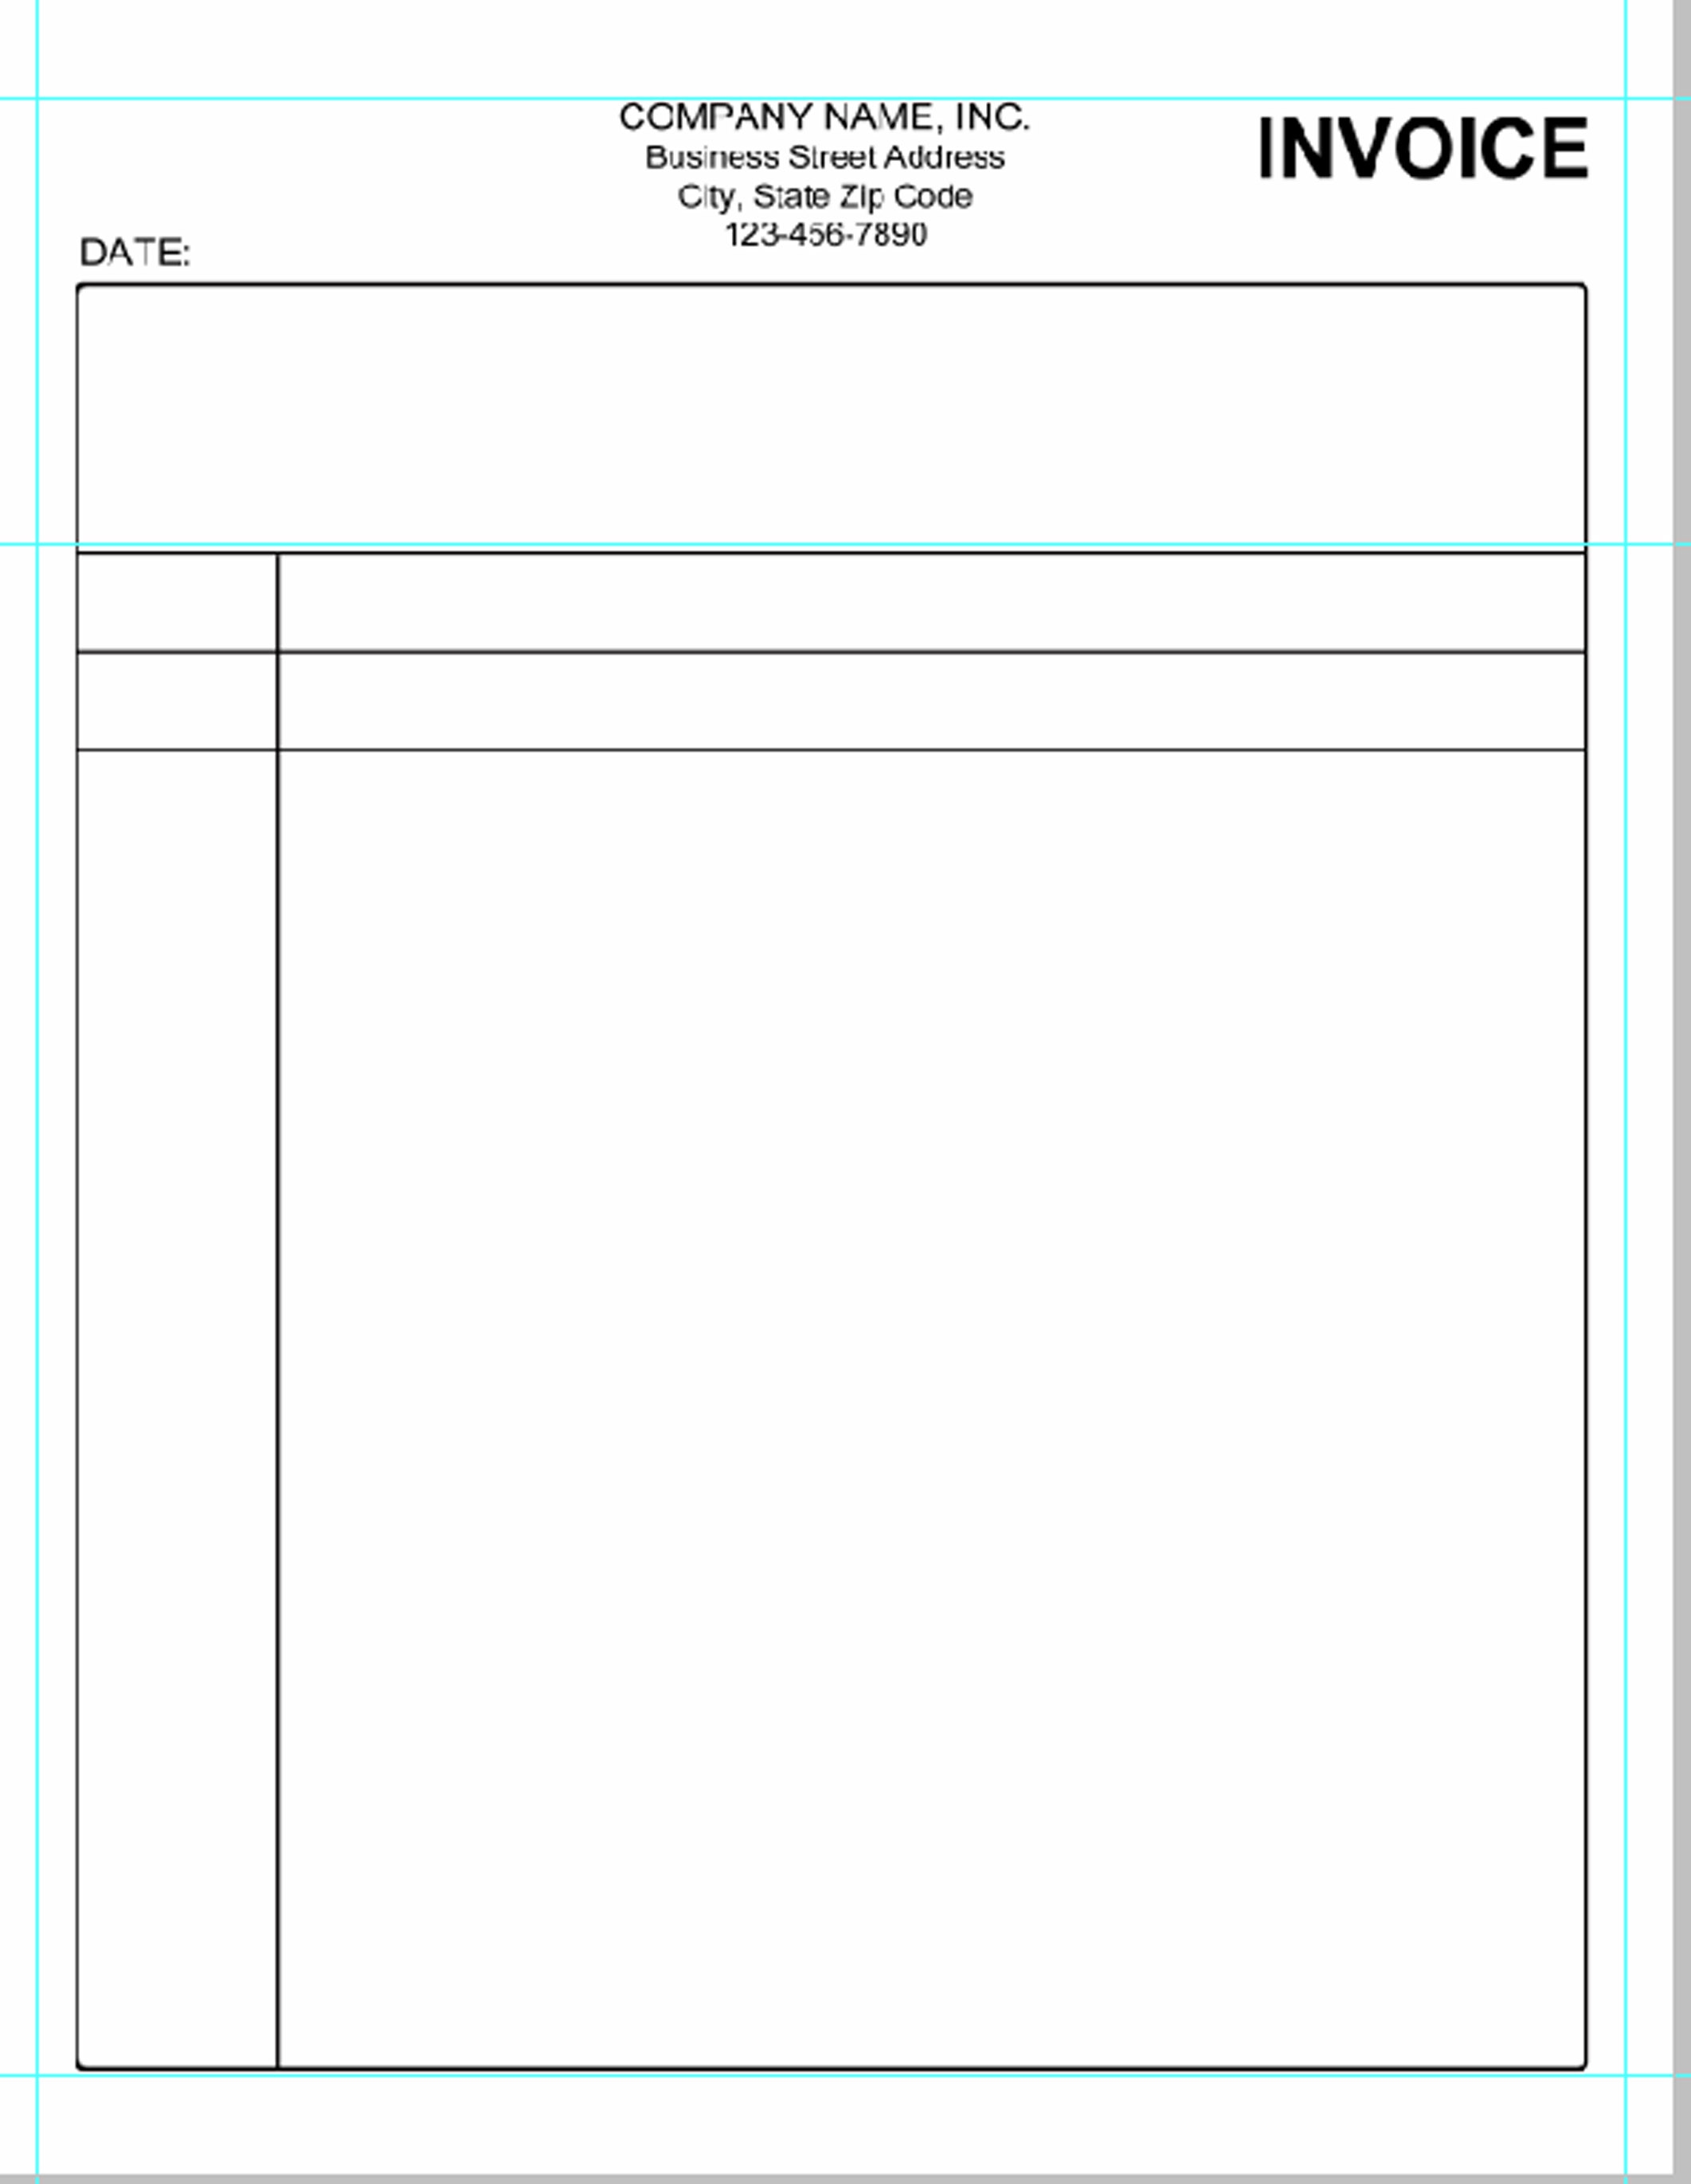 blank invoice template free to print blank invoice form to print blank invoice form pdf